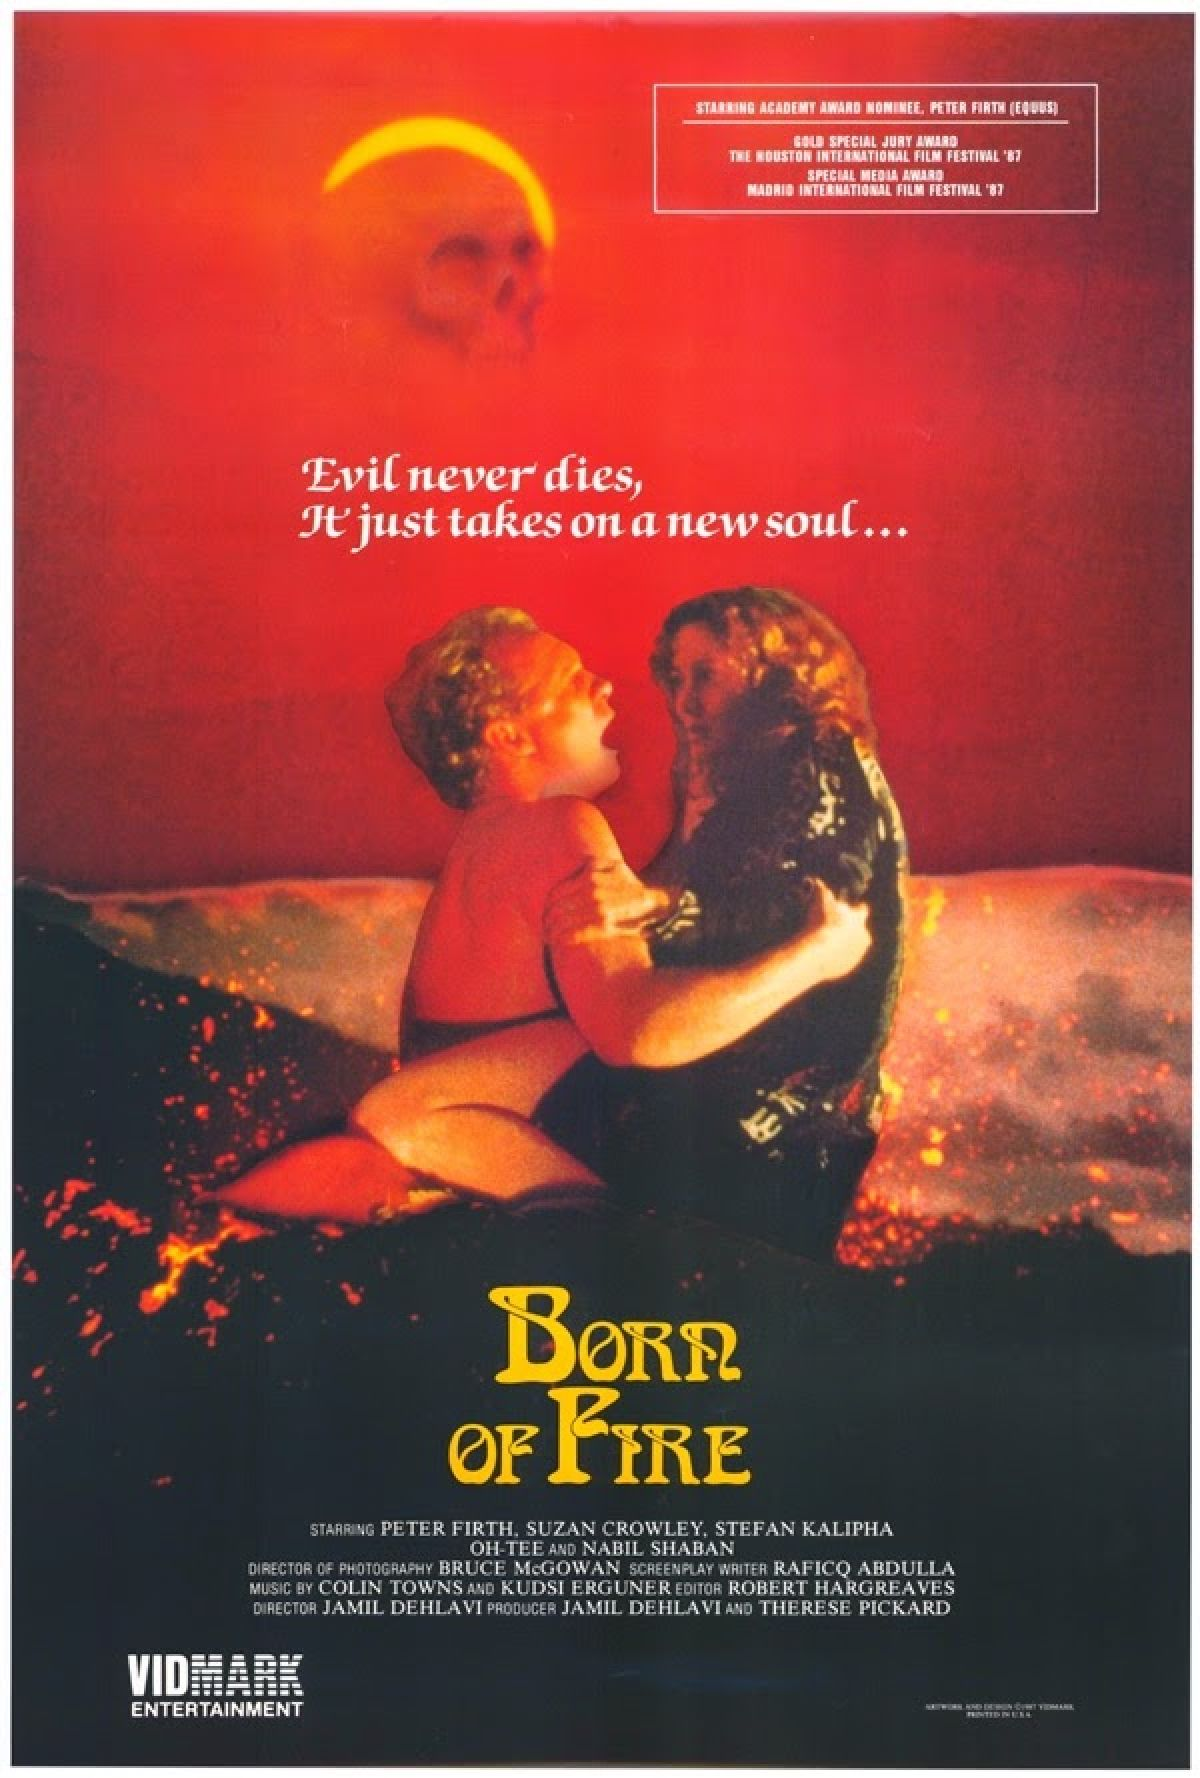 'Born Of Fire' movie poster